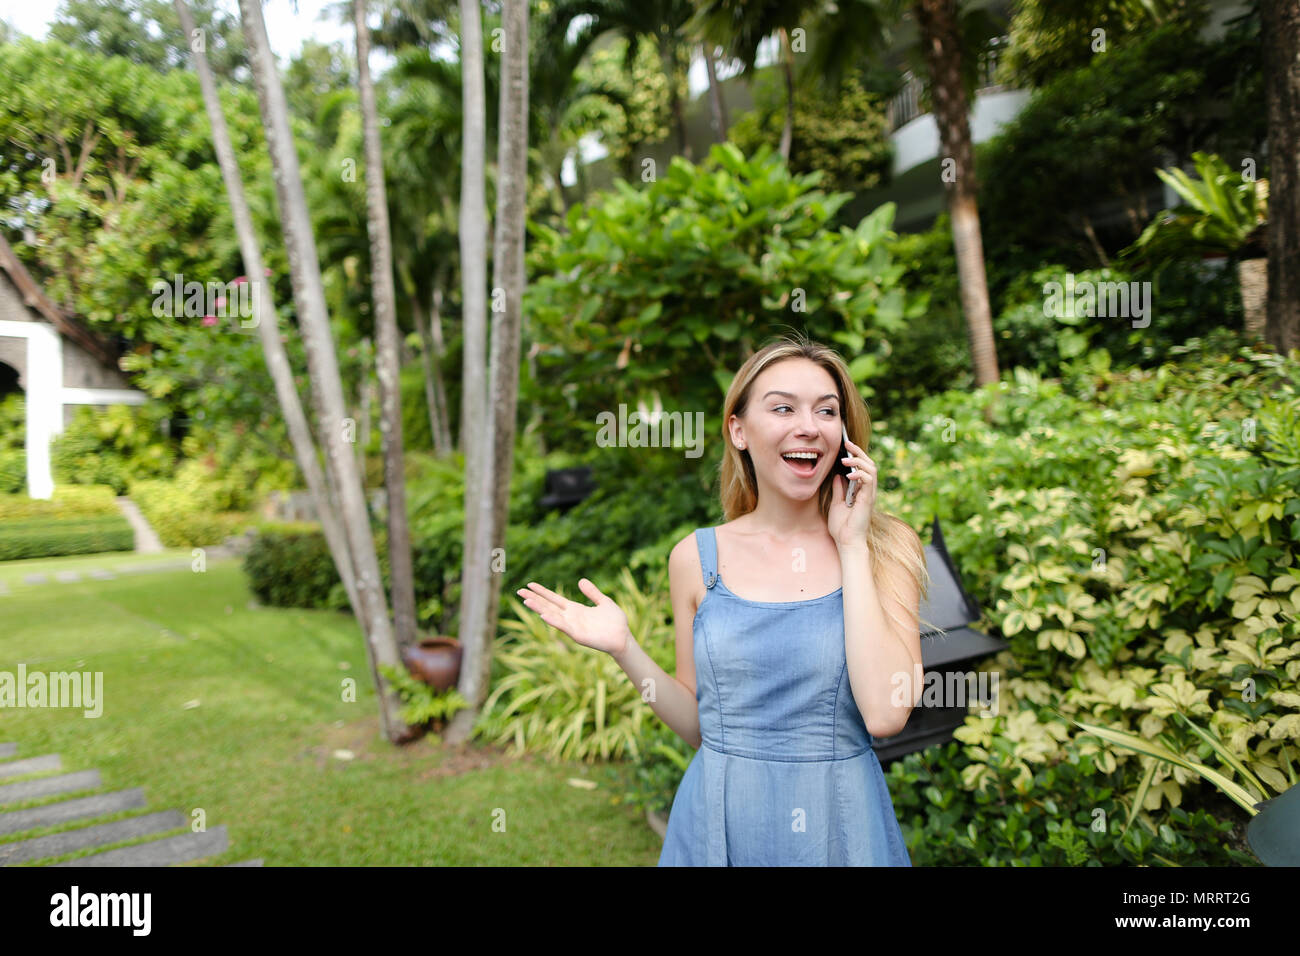 Young woman talking by smartphone in garden near trees, wearing jeans sundress. - Stock Image